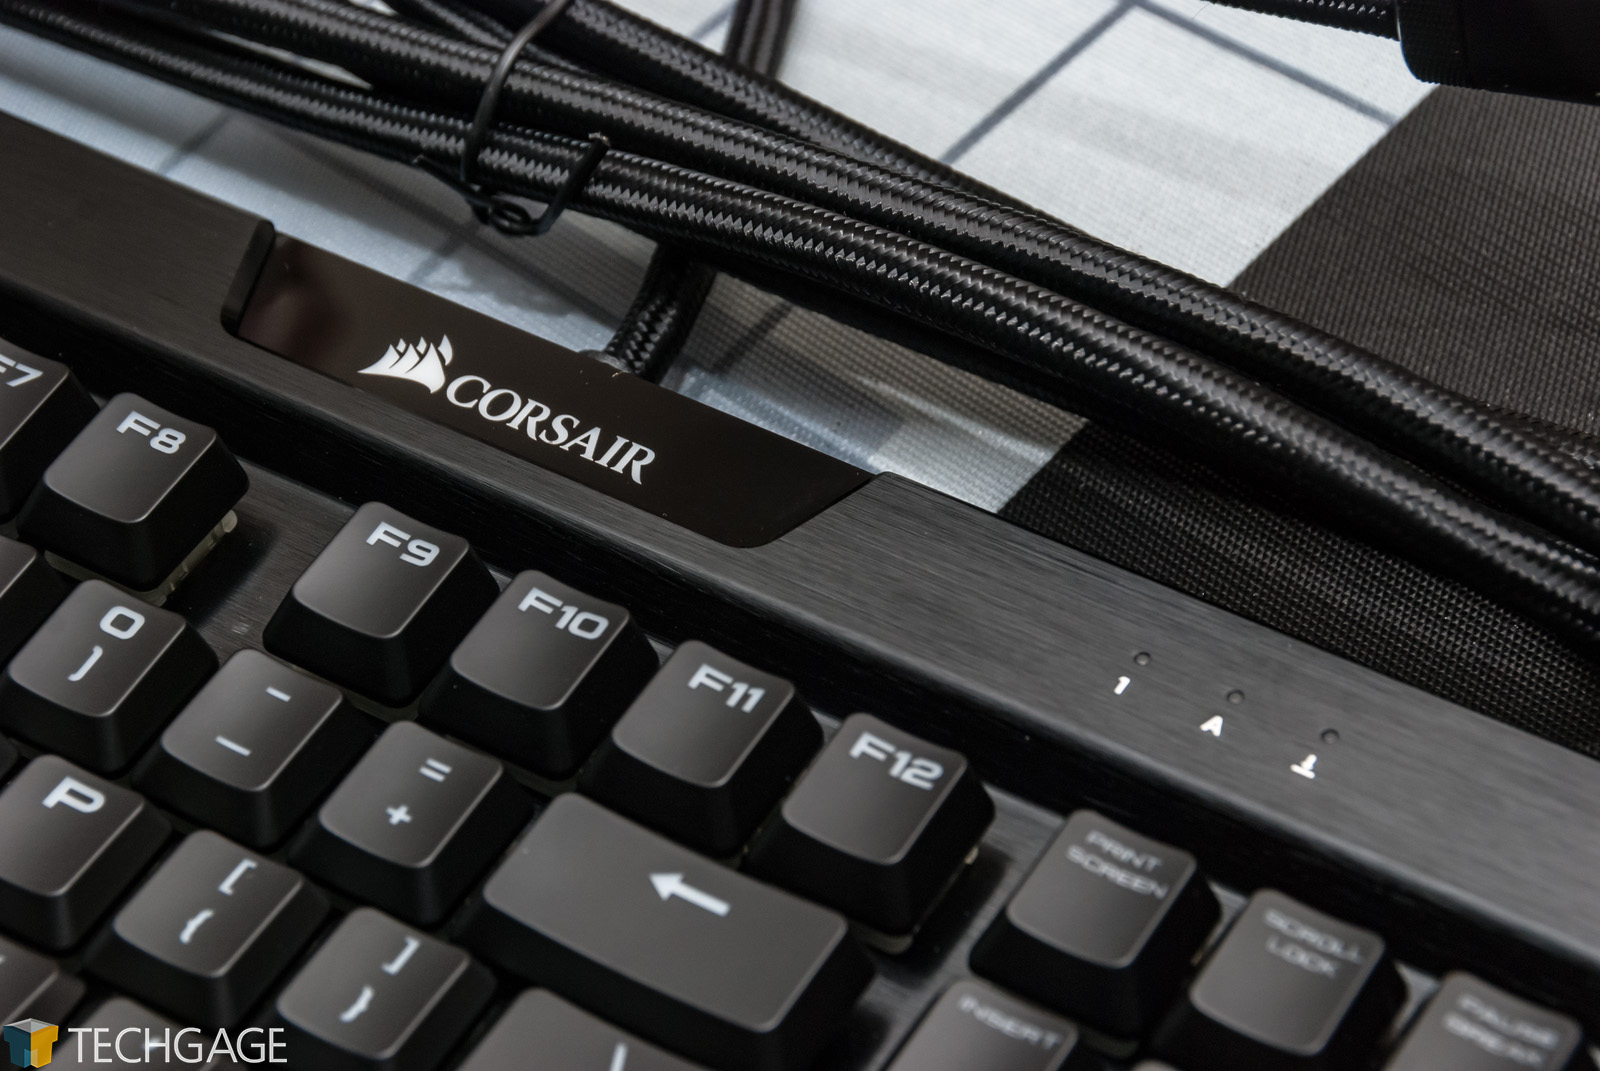 Corsair Keyboard Library